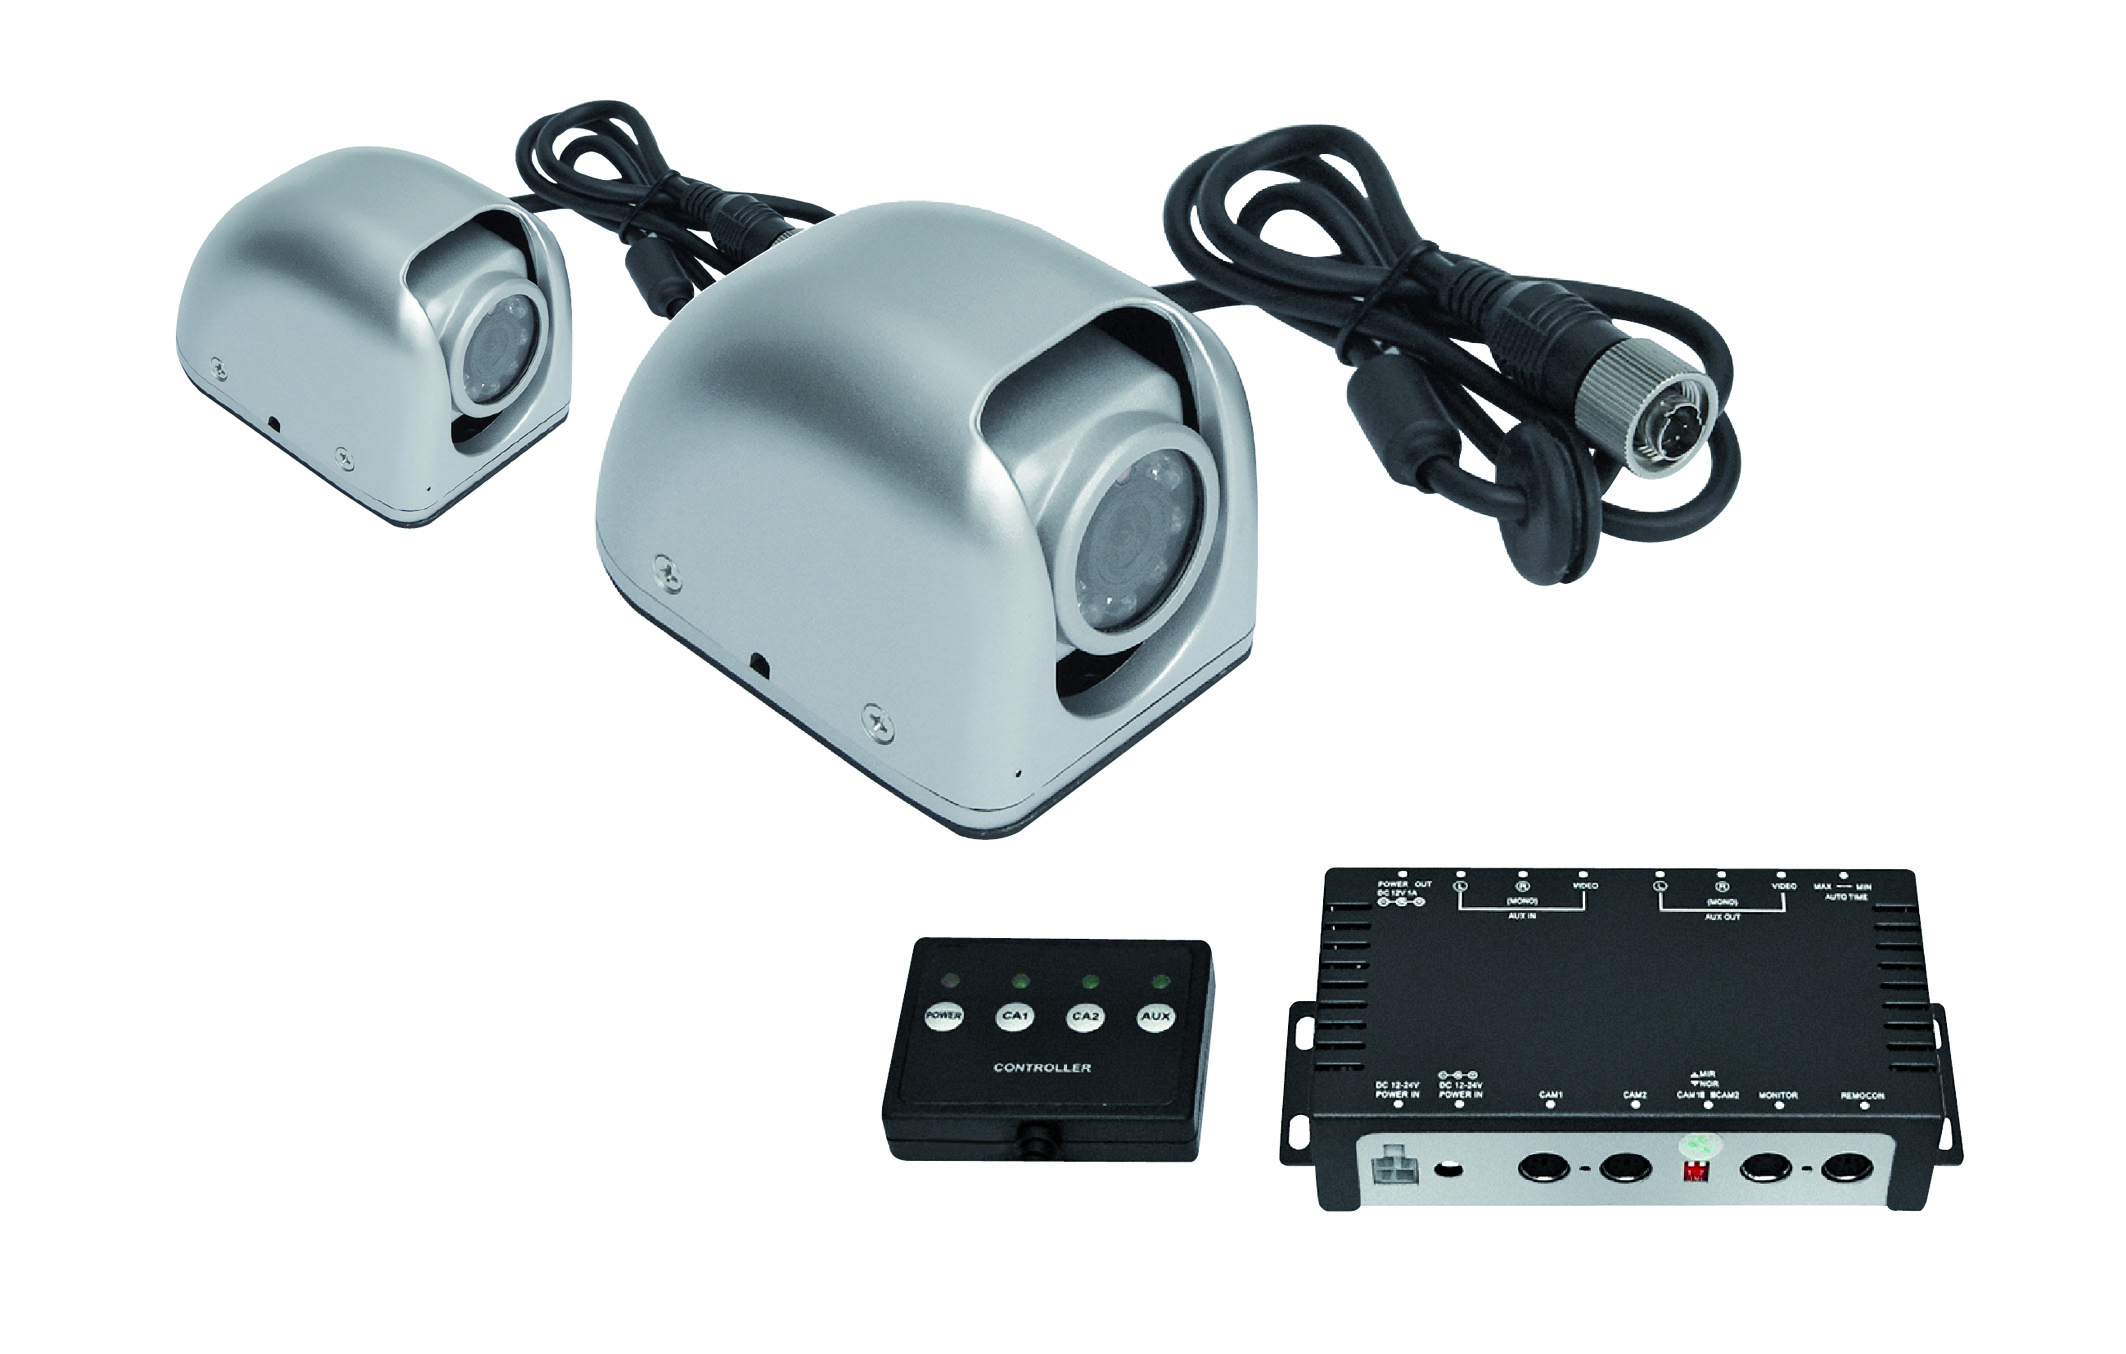 CARGUARD side cameras, 2 pieces for 12V to 24V, 10m cable, 4 times splitter box